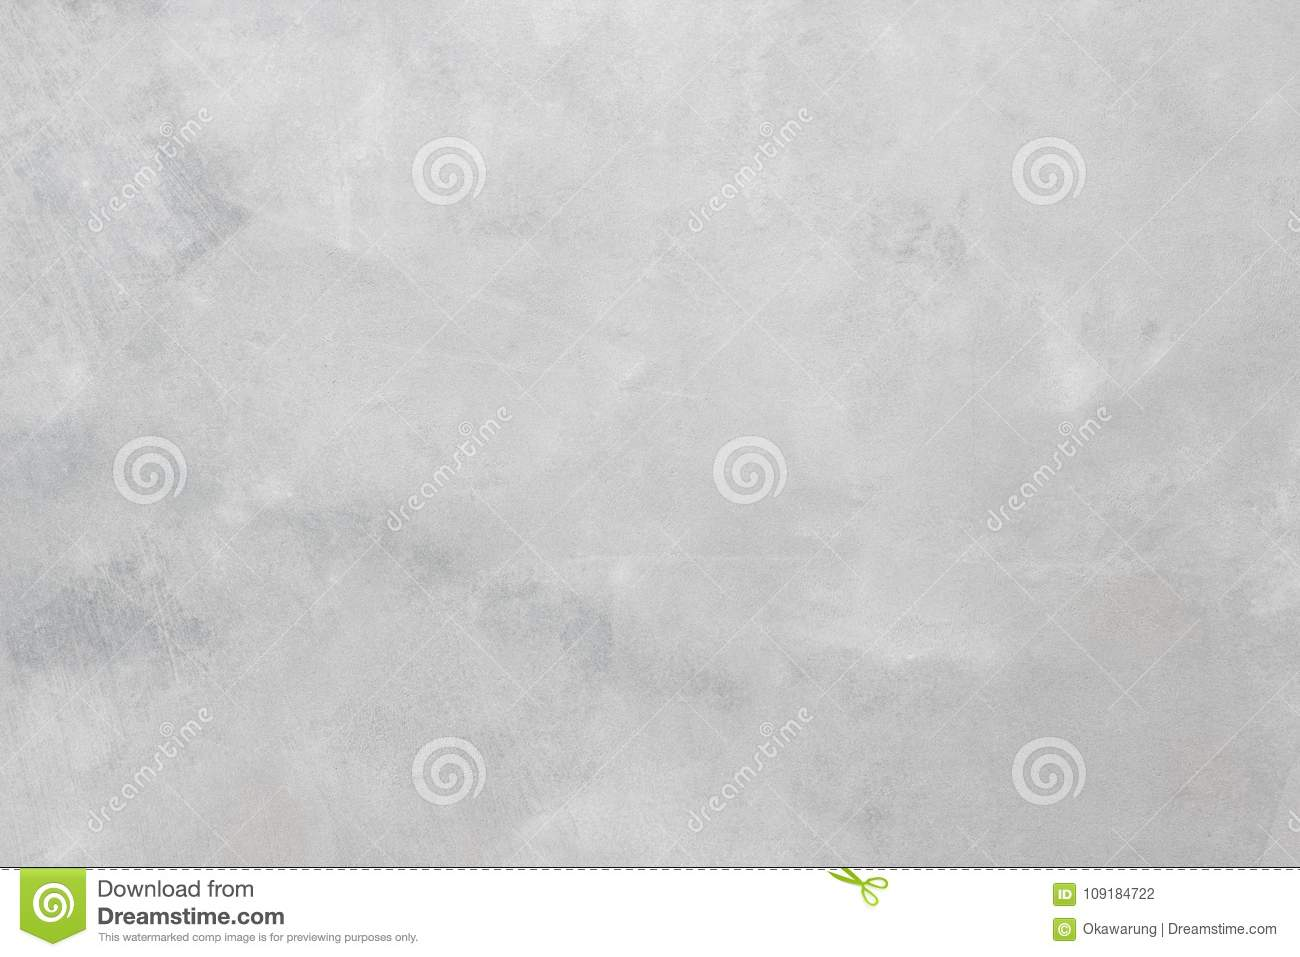 Concrete wall.white concrete texture background of natural cement or stone old texture as a retro pattern wall.Used for placing ba